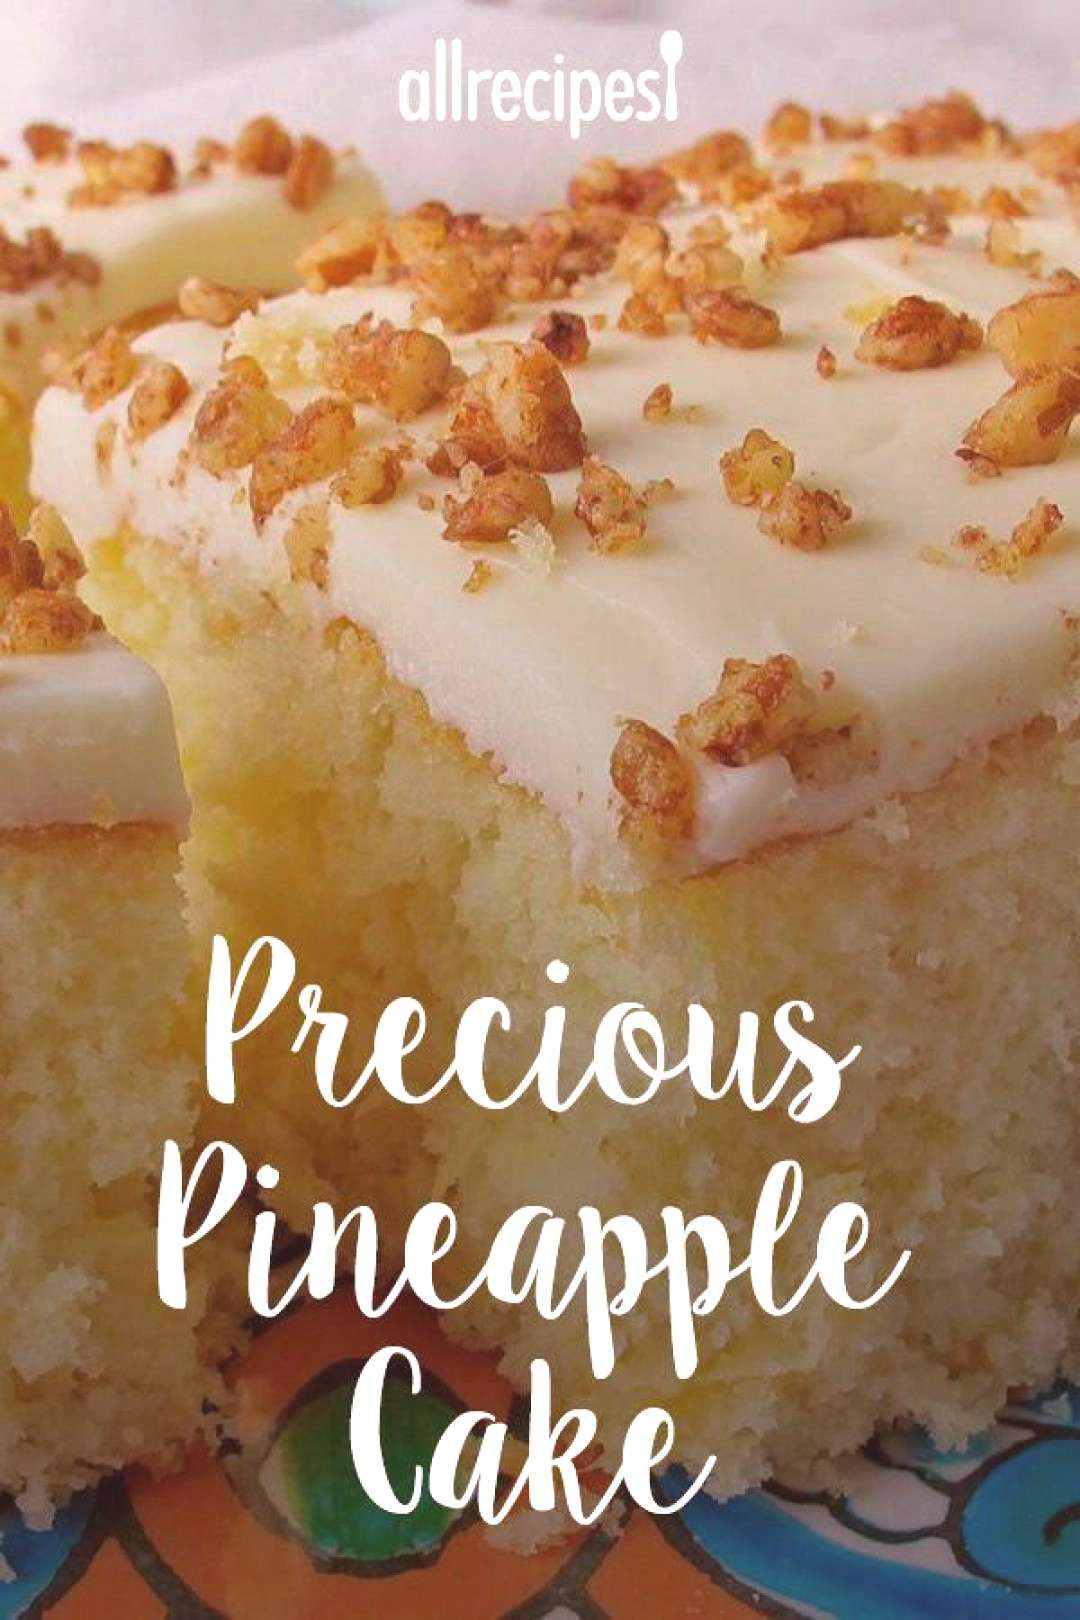 Precious Pineapple Cake   quotThis wonderful cake starts with a cake mix to which you add pineapple an